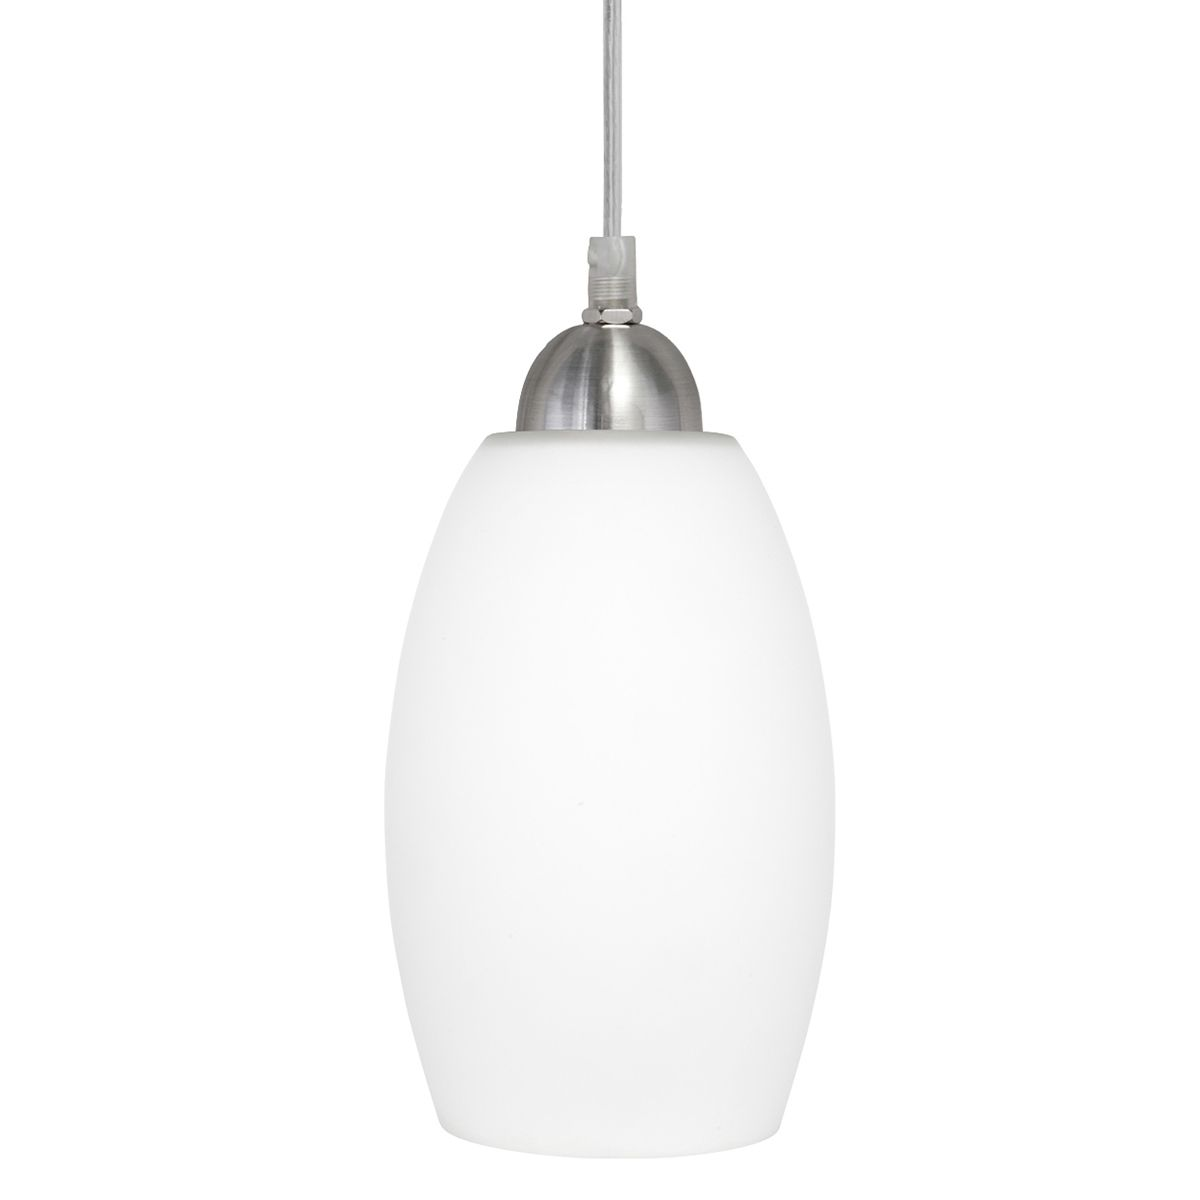 Modern do it yourself pendant light with white frosted glass modern do it yourself pendant light with white frosted glass brushed steel metalware aloadofball Images